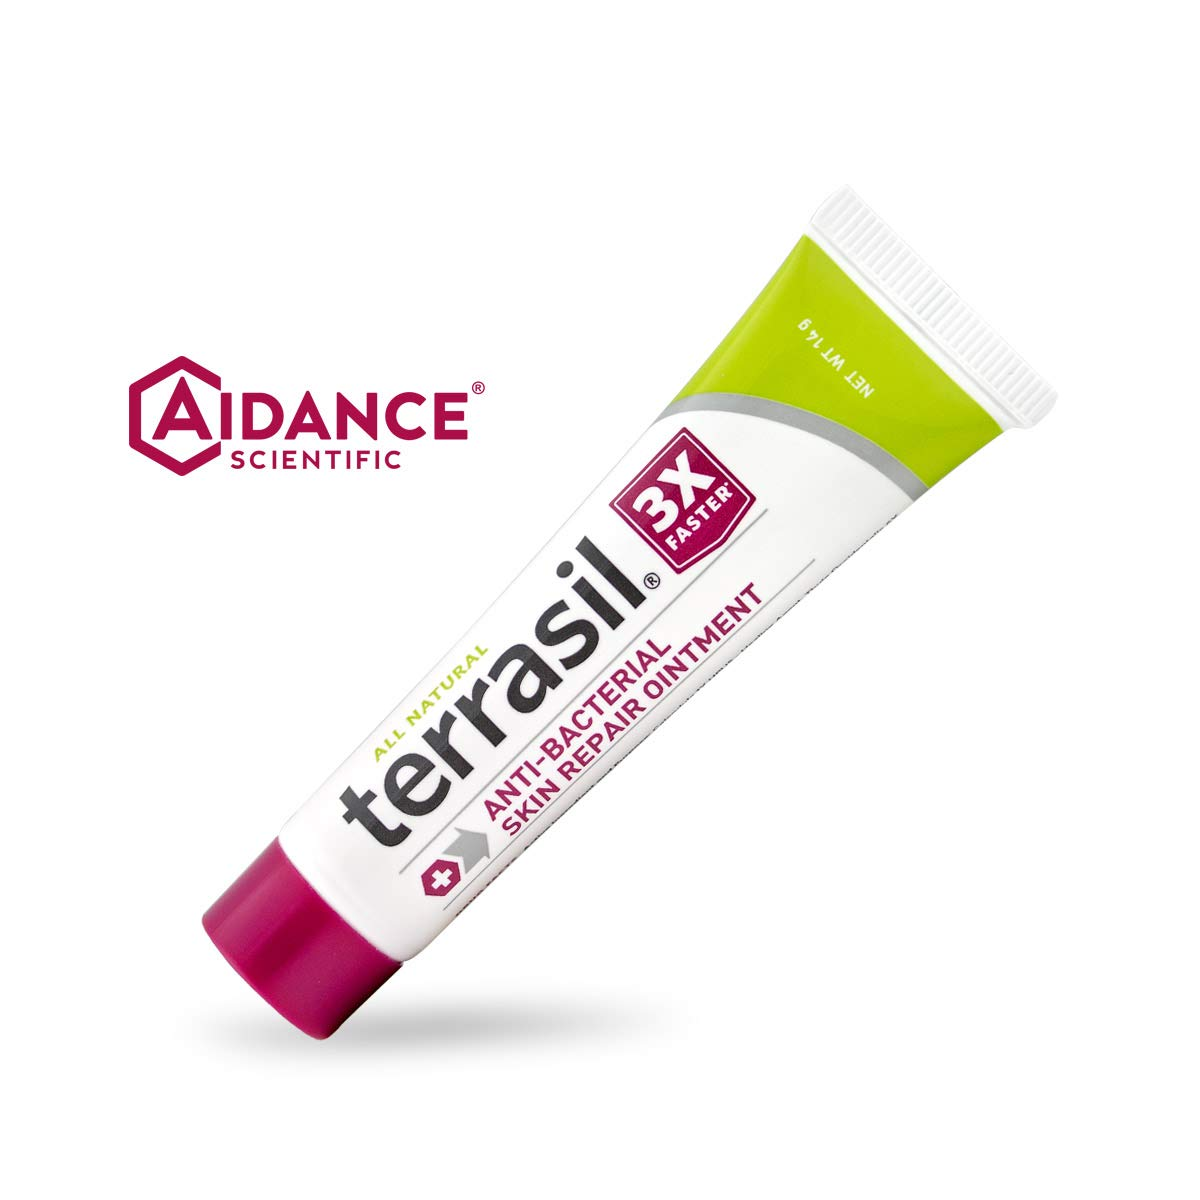 Antibacterial Skin Repair 3X Faster Dr. Recommended 100% Guaranteed All Natural Ointment Fissures Folliculitis Angular Cheilitis Impetigo Chilblains Lichen Sclerosus Boils Cellulitis by Terrasil® by Aidance Skincare & Topical Solutions